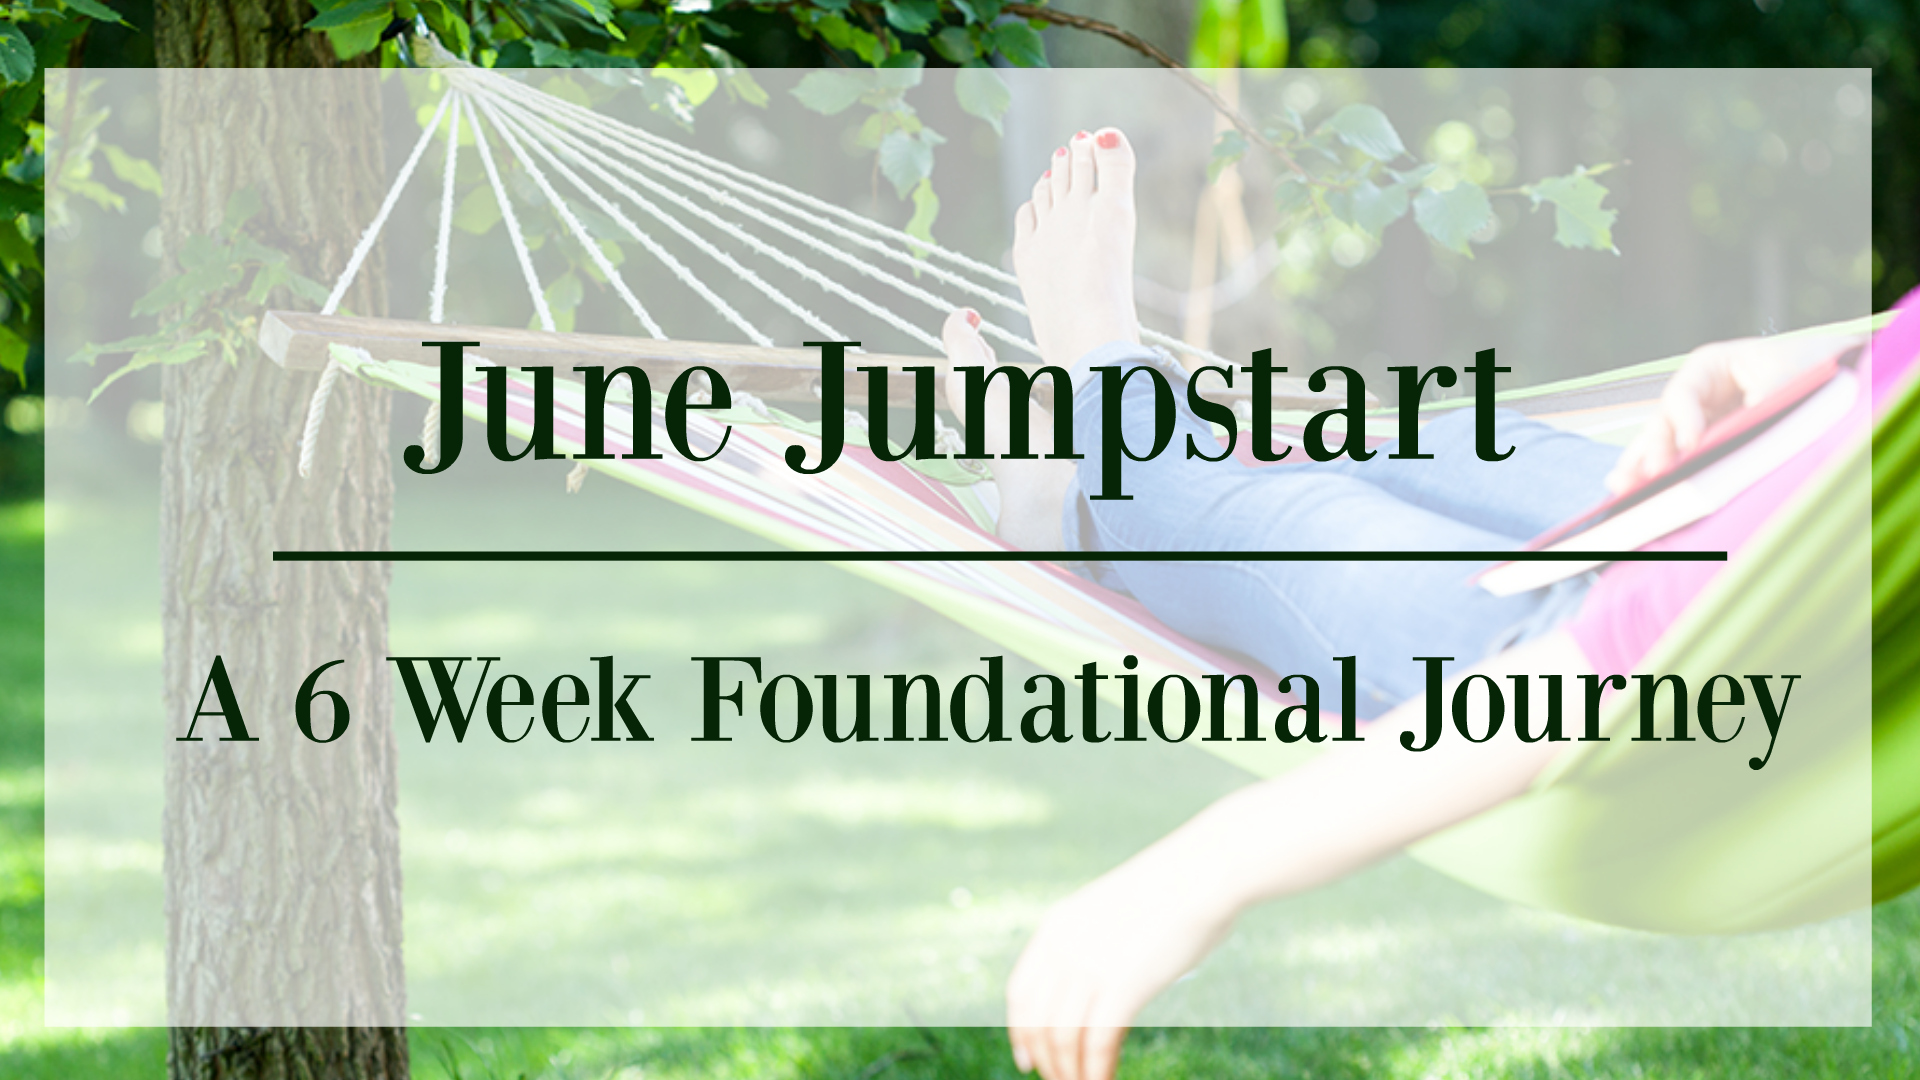 june jumpstart .jpg